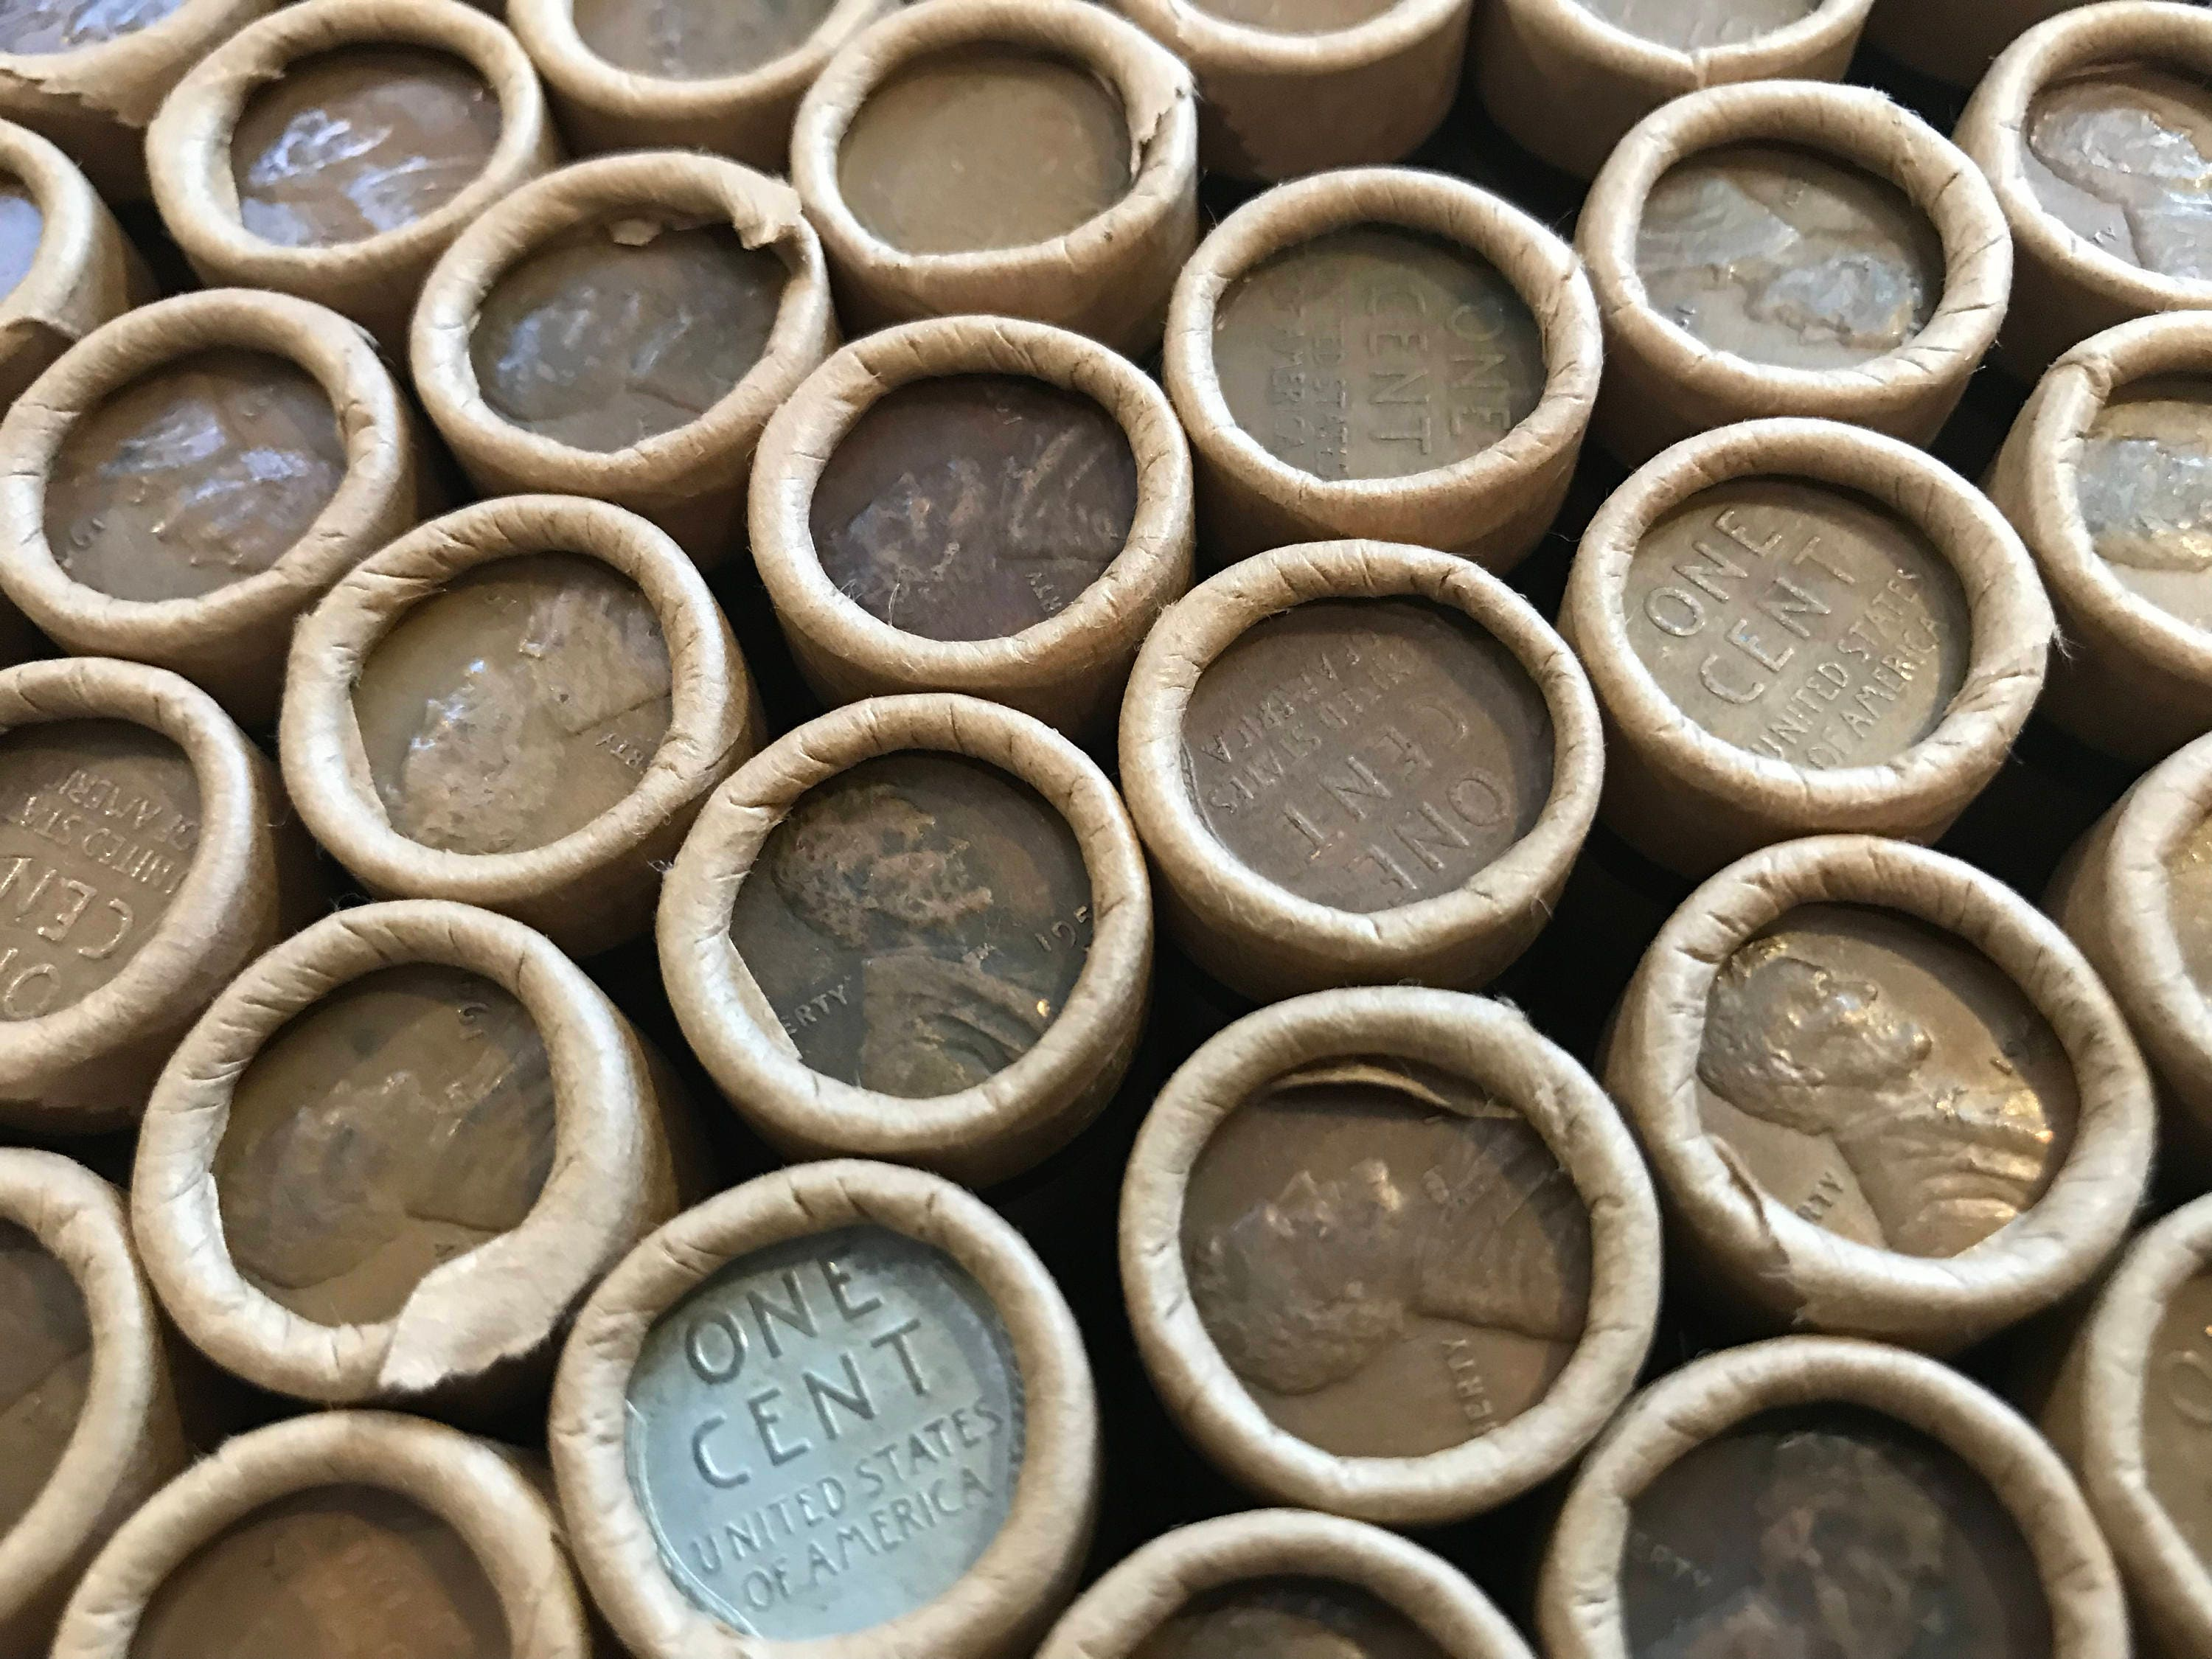 WHEAT PENNY ROLL LINCOLN CENT UNSORTED VINTAGE ESTATE BANK ROLL!